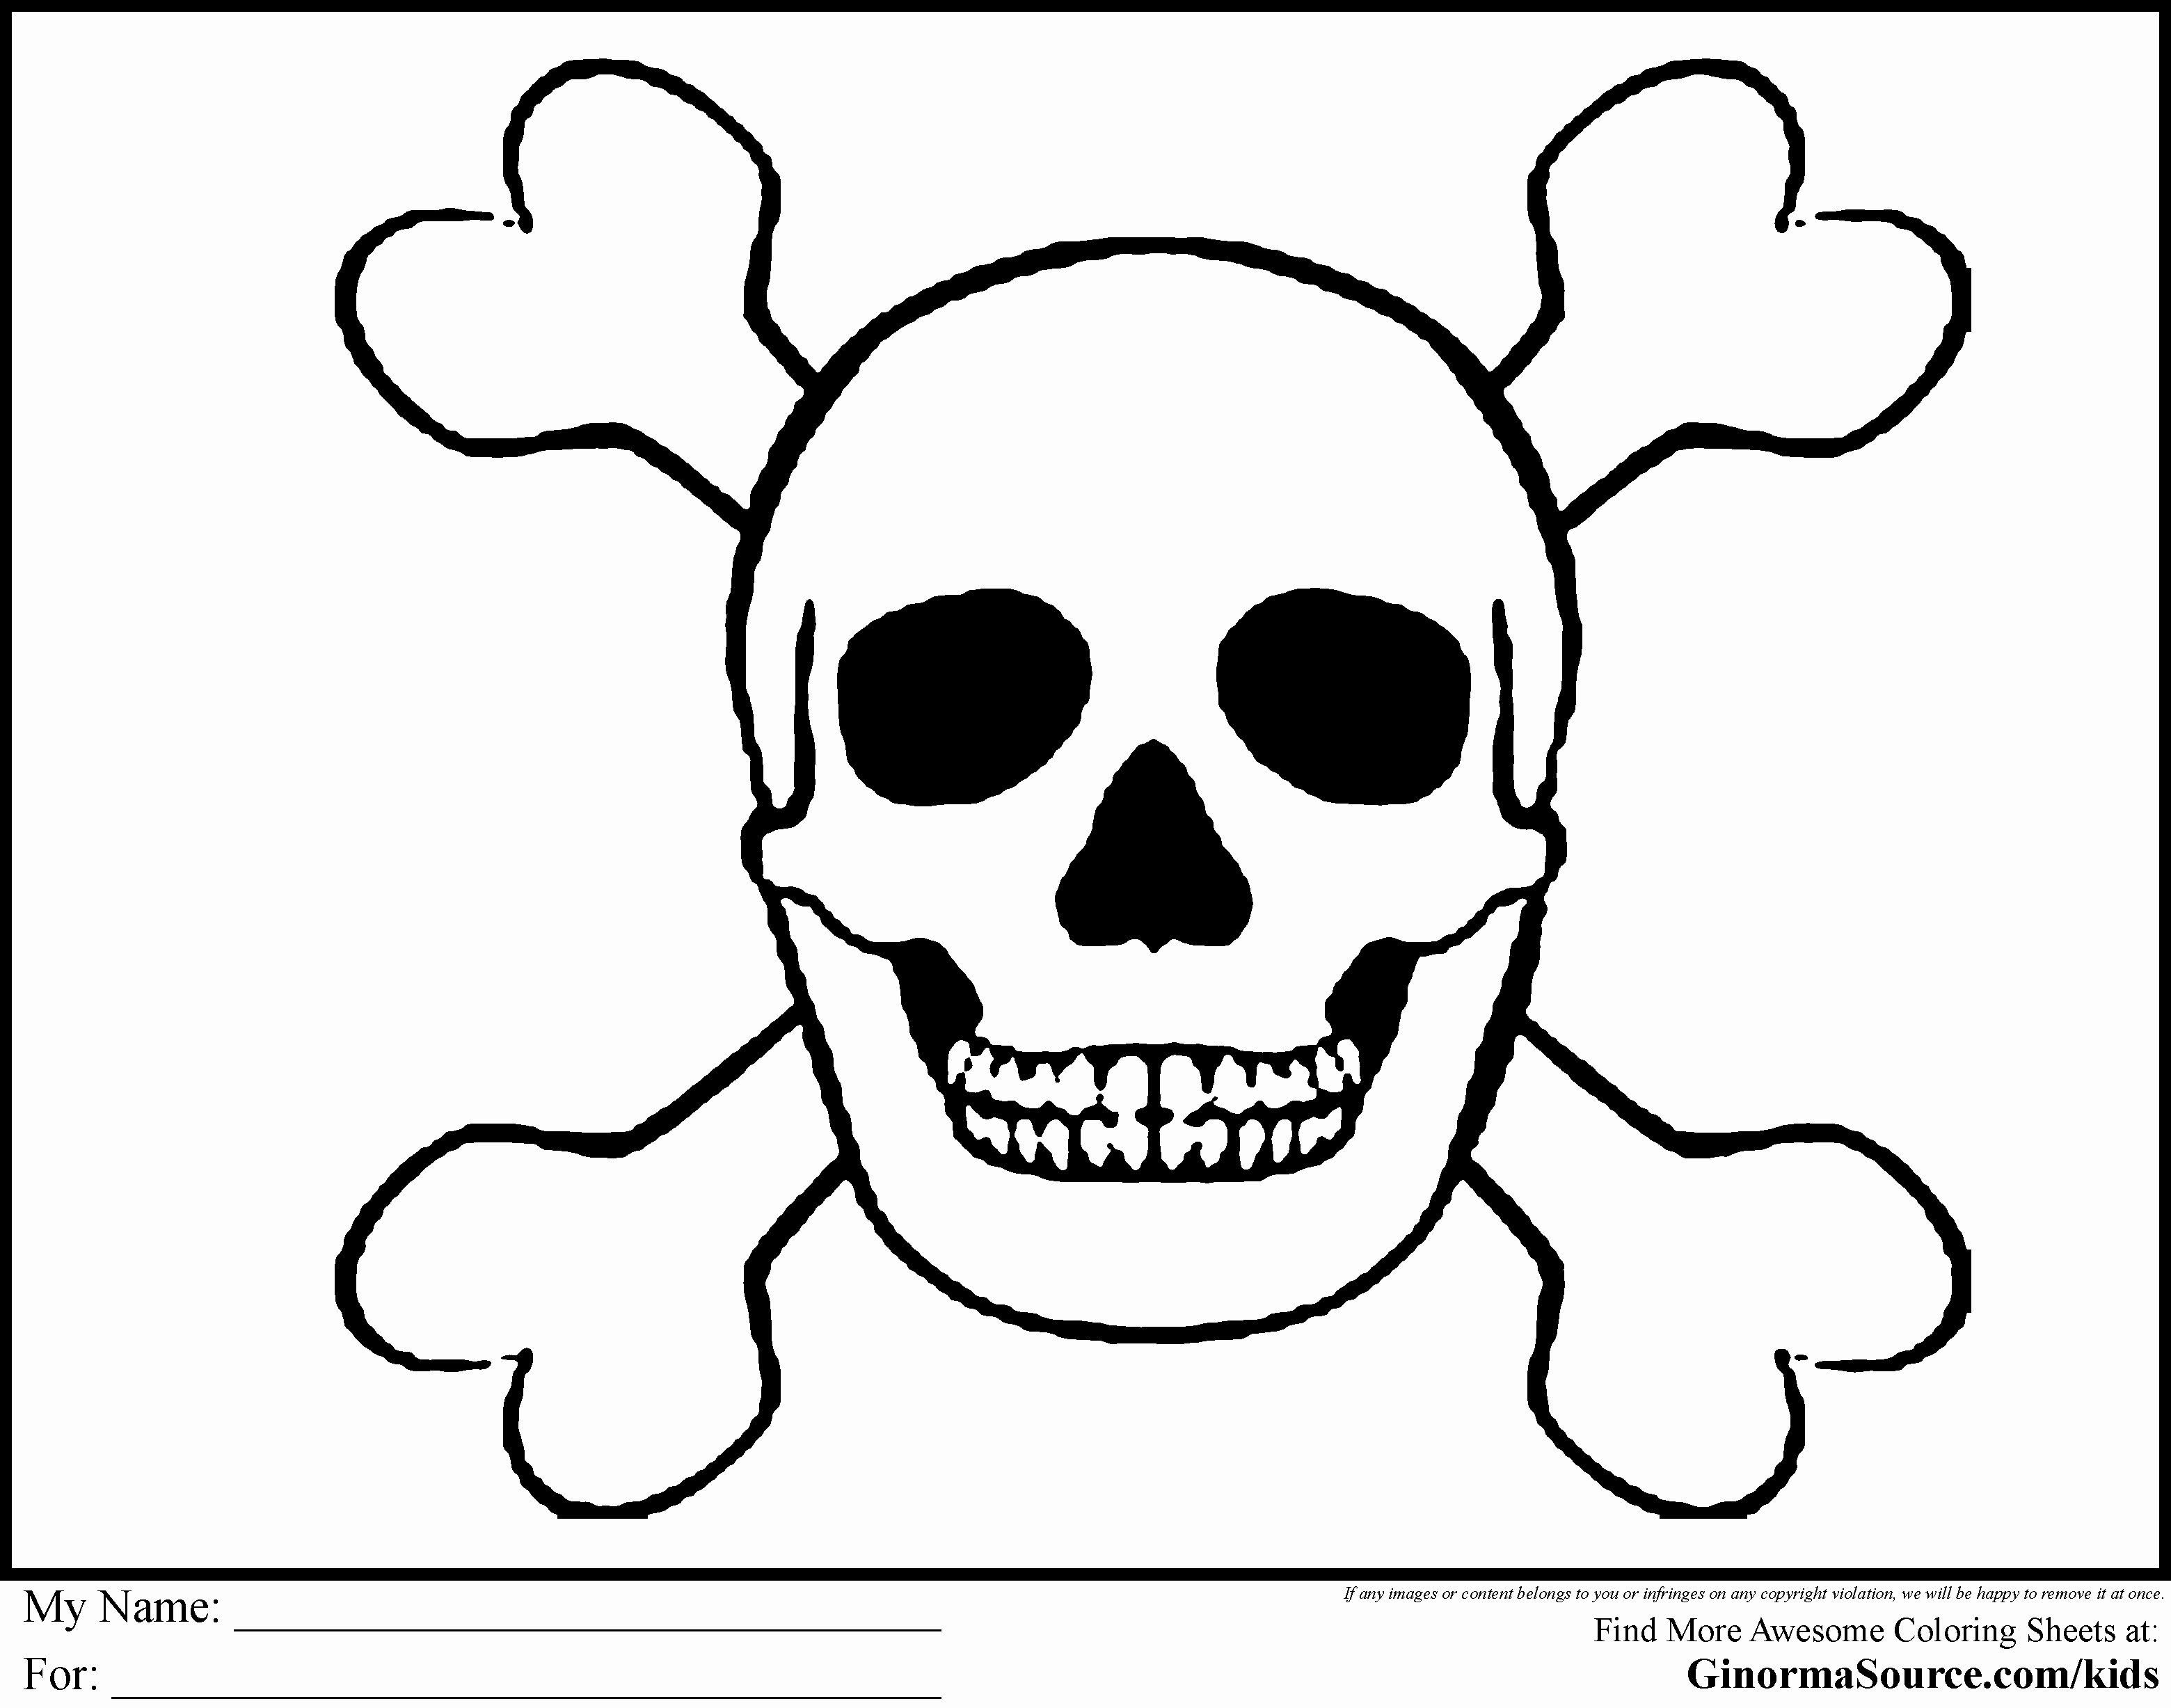 Skull And Crossbones Coloring Pages Elegant Of Ezekiel Dry Bones Coloring Page Sabadaphnecottage Pirate Coloring Pages Flag Coloring Pages Coloring Pages